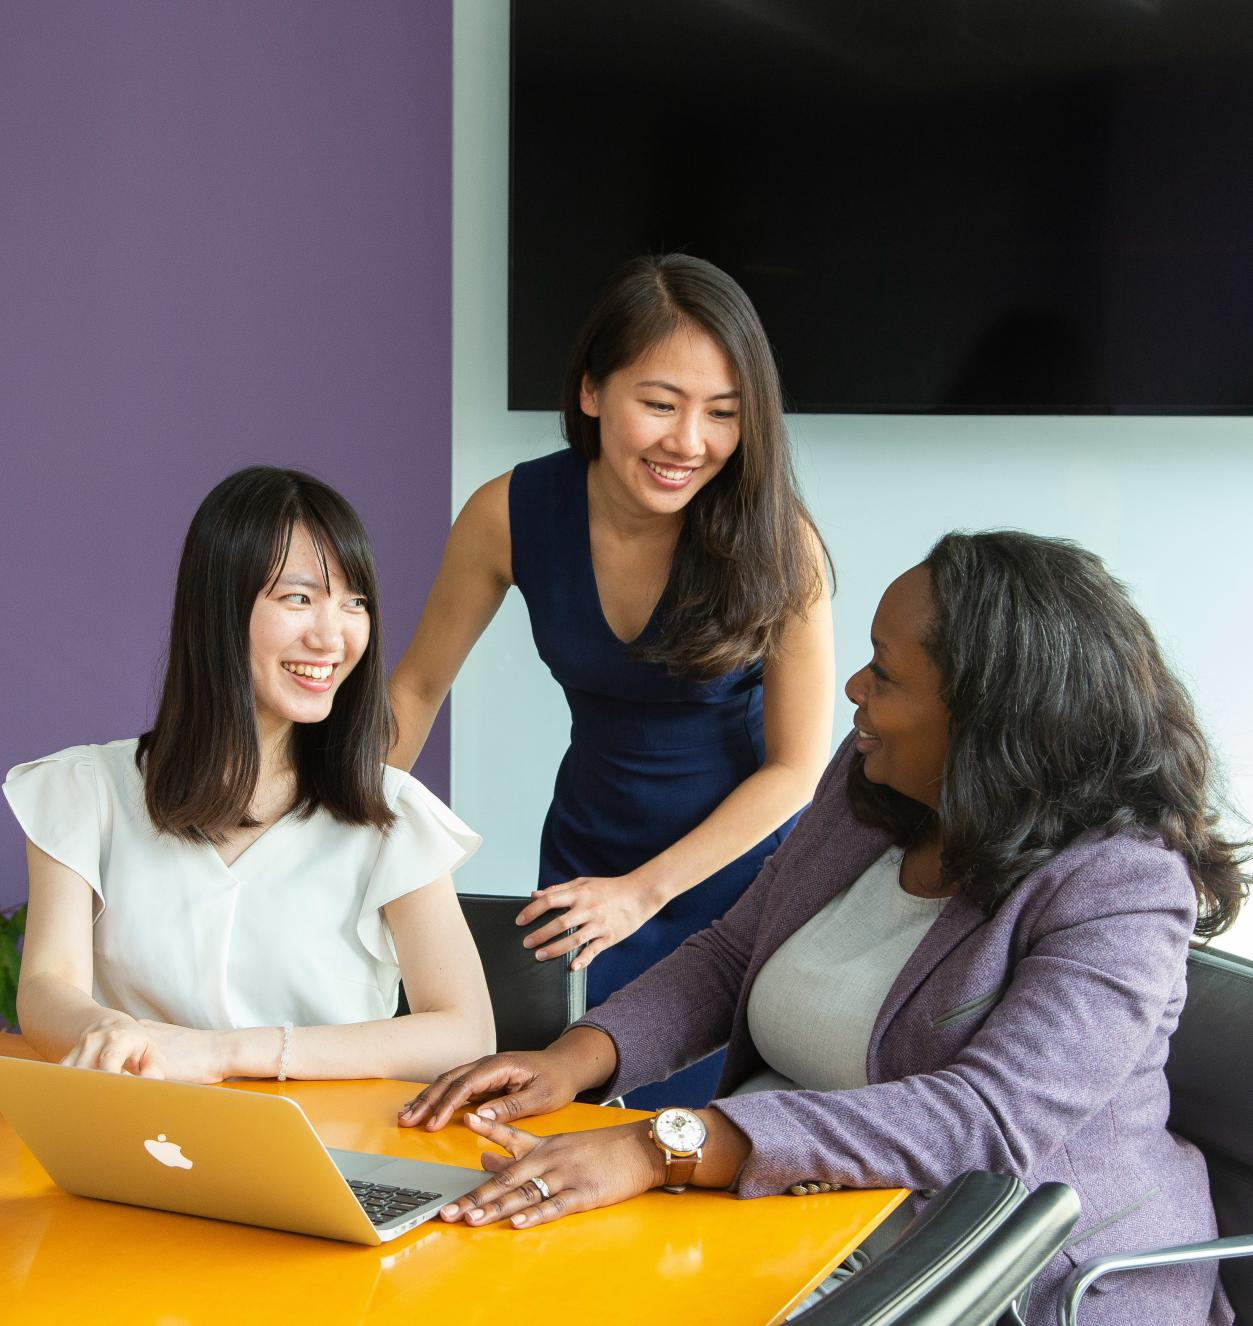 3 women in a conference room